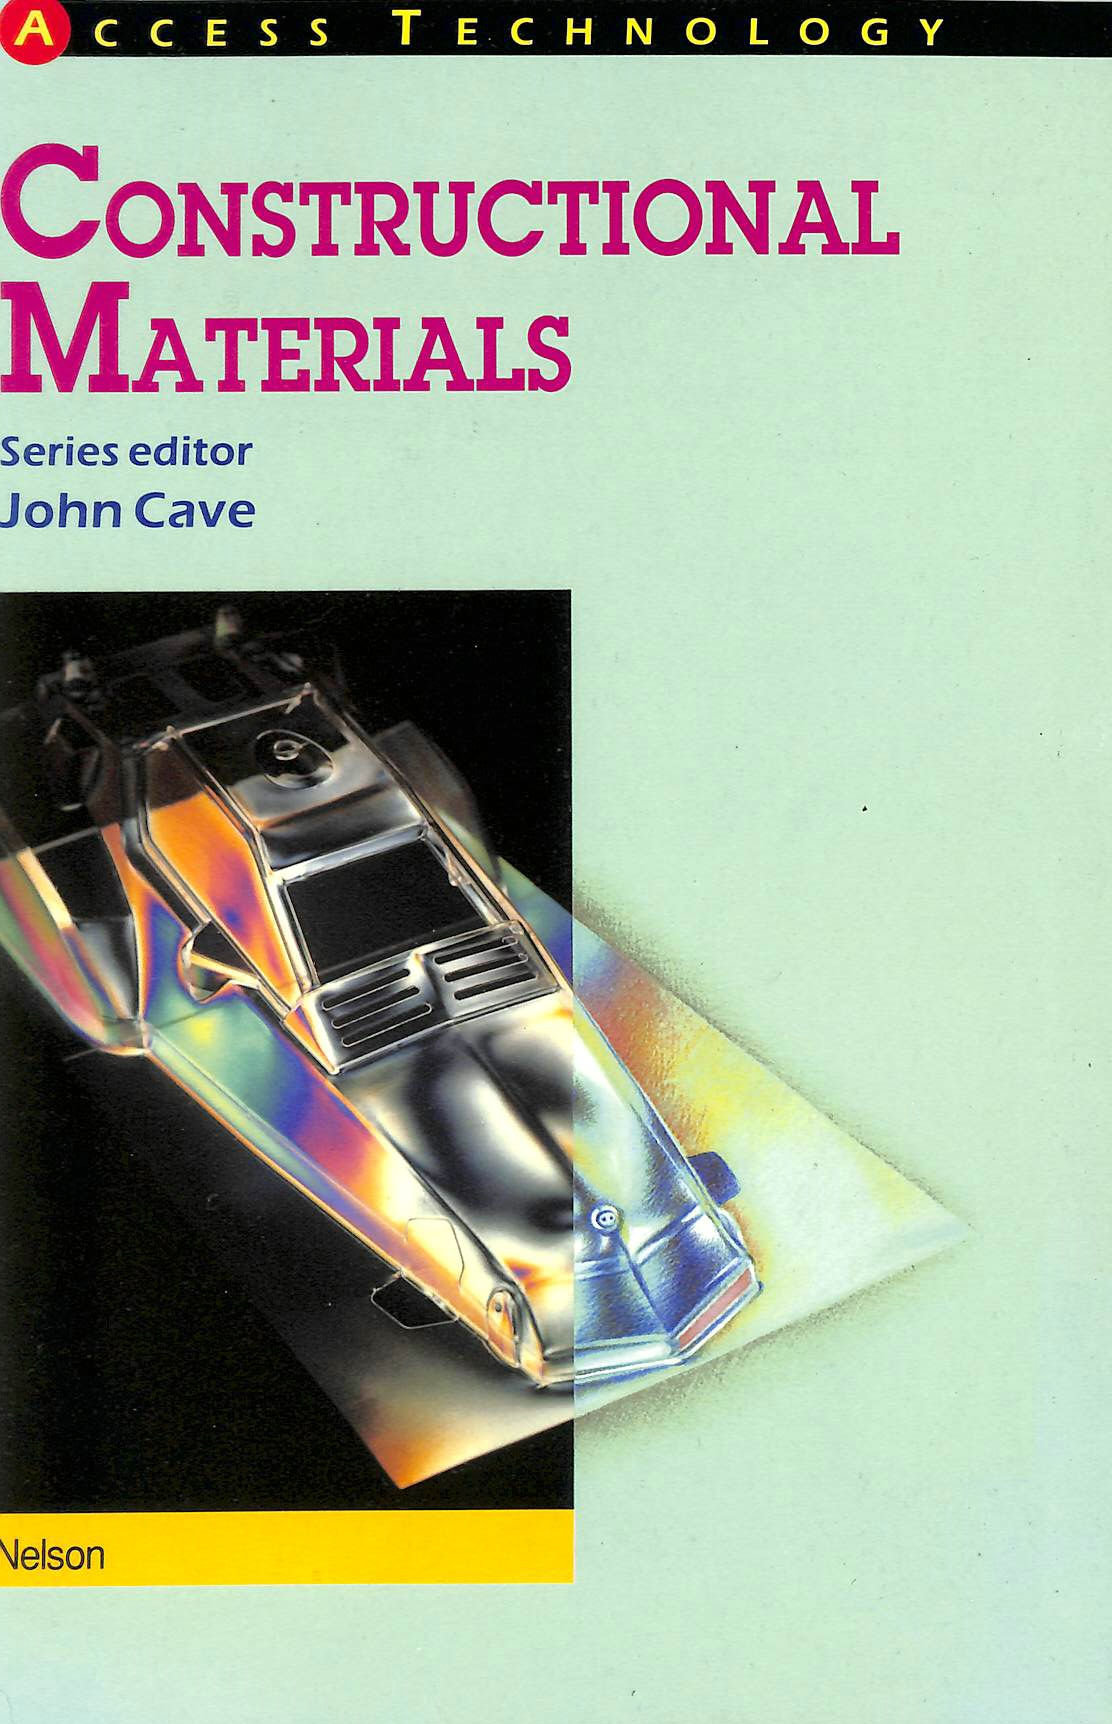 Image for Constructional Materials (Access Technology)